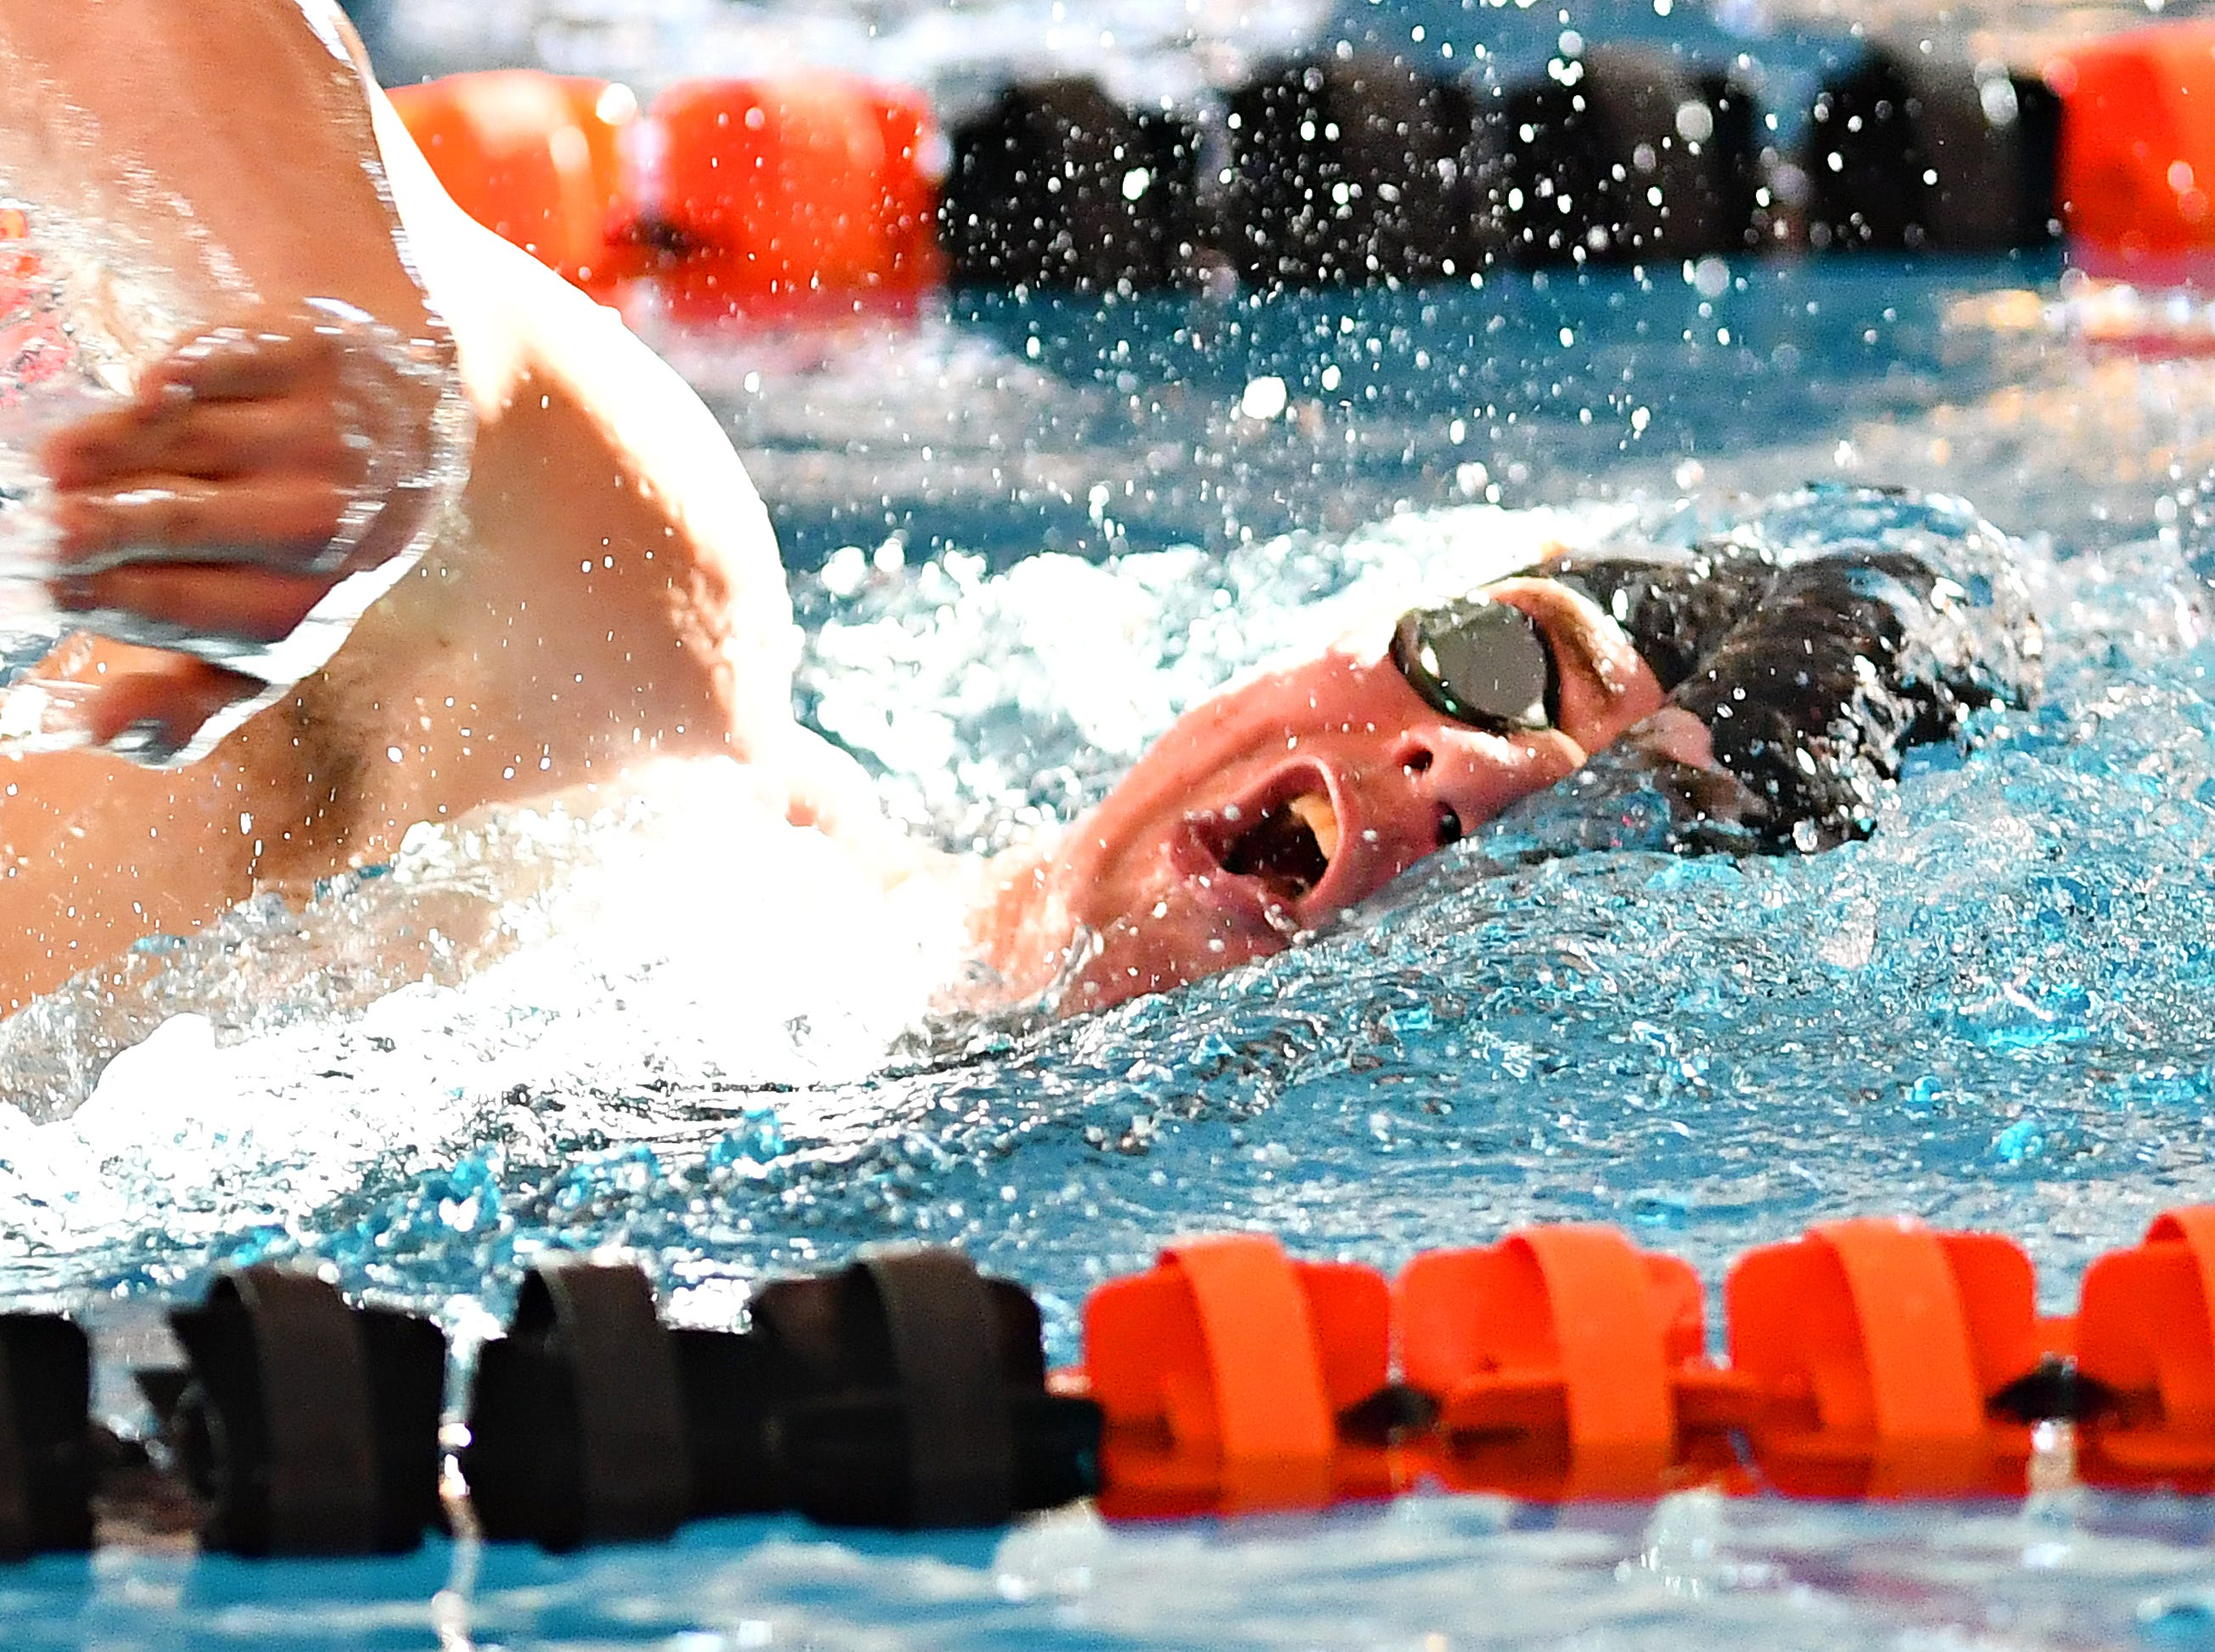 York Suburban's Garrett Herink competes in the 500 Yard Freestyle event during the York-Adams League Swimming Championship at Central York High School in Springettsbury Township, Saturday, Feb. 9, 2019. Dawn J. Sagert photo